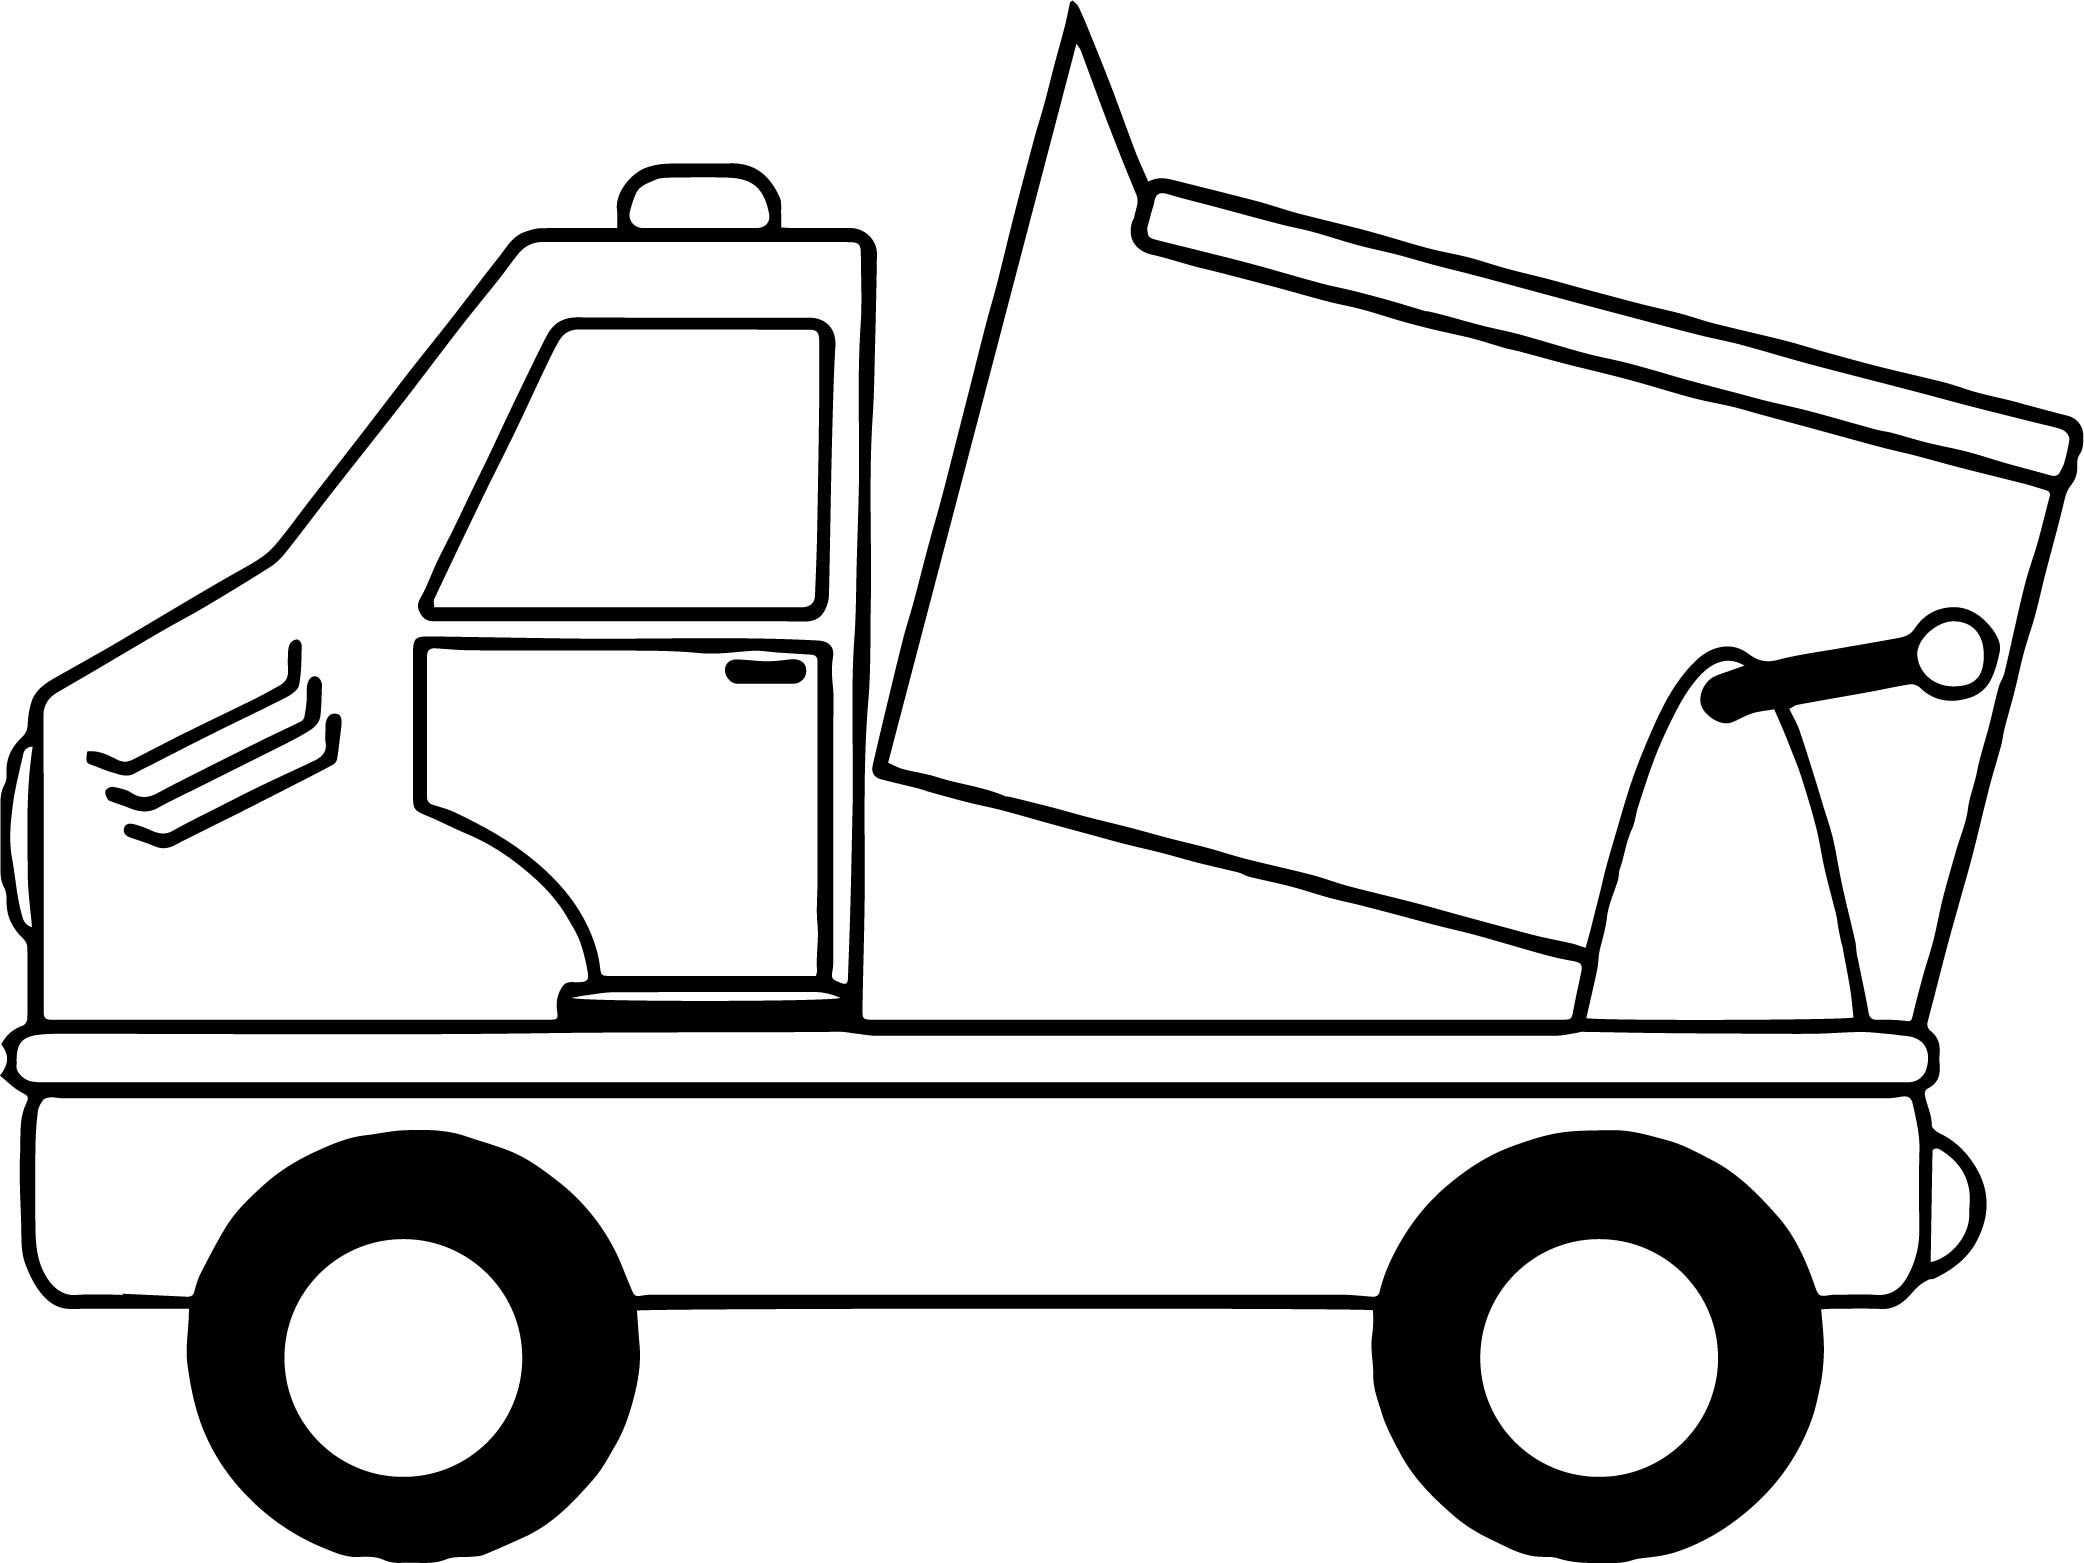 Cool Simple Cartoon Drawing Of A Dump Truck Coloring Page